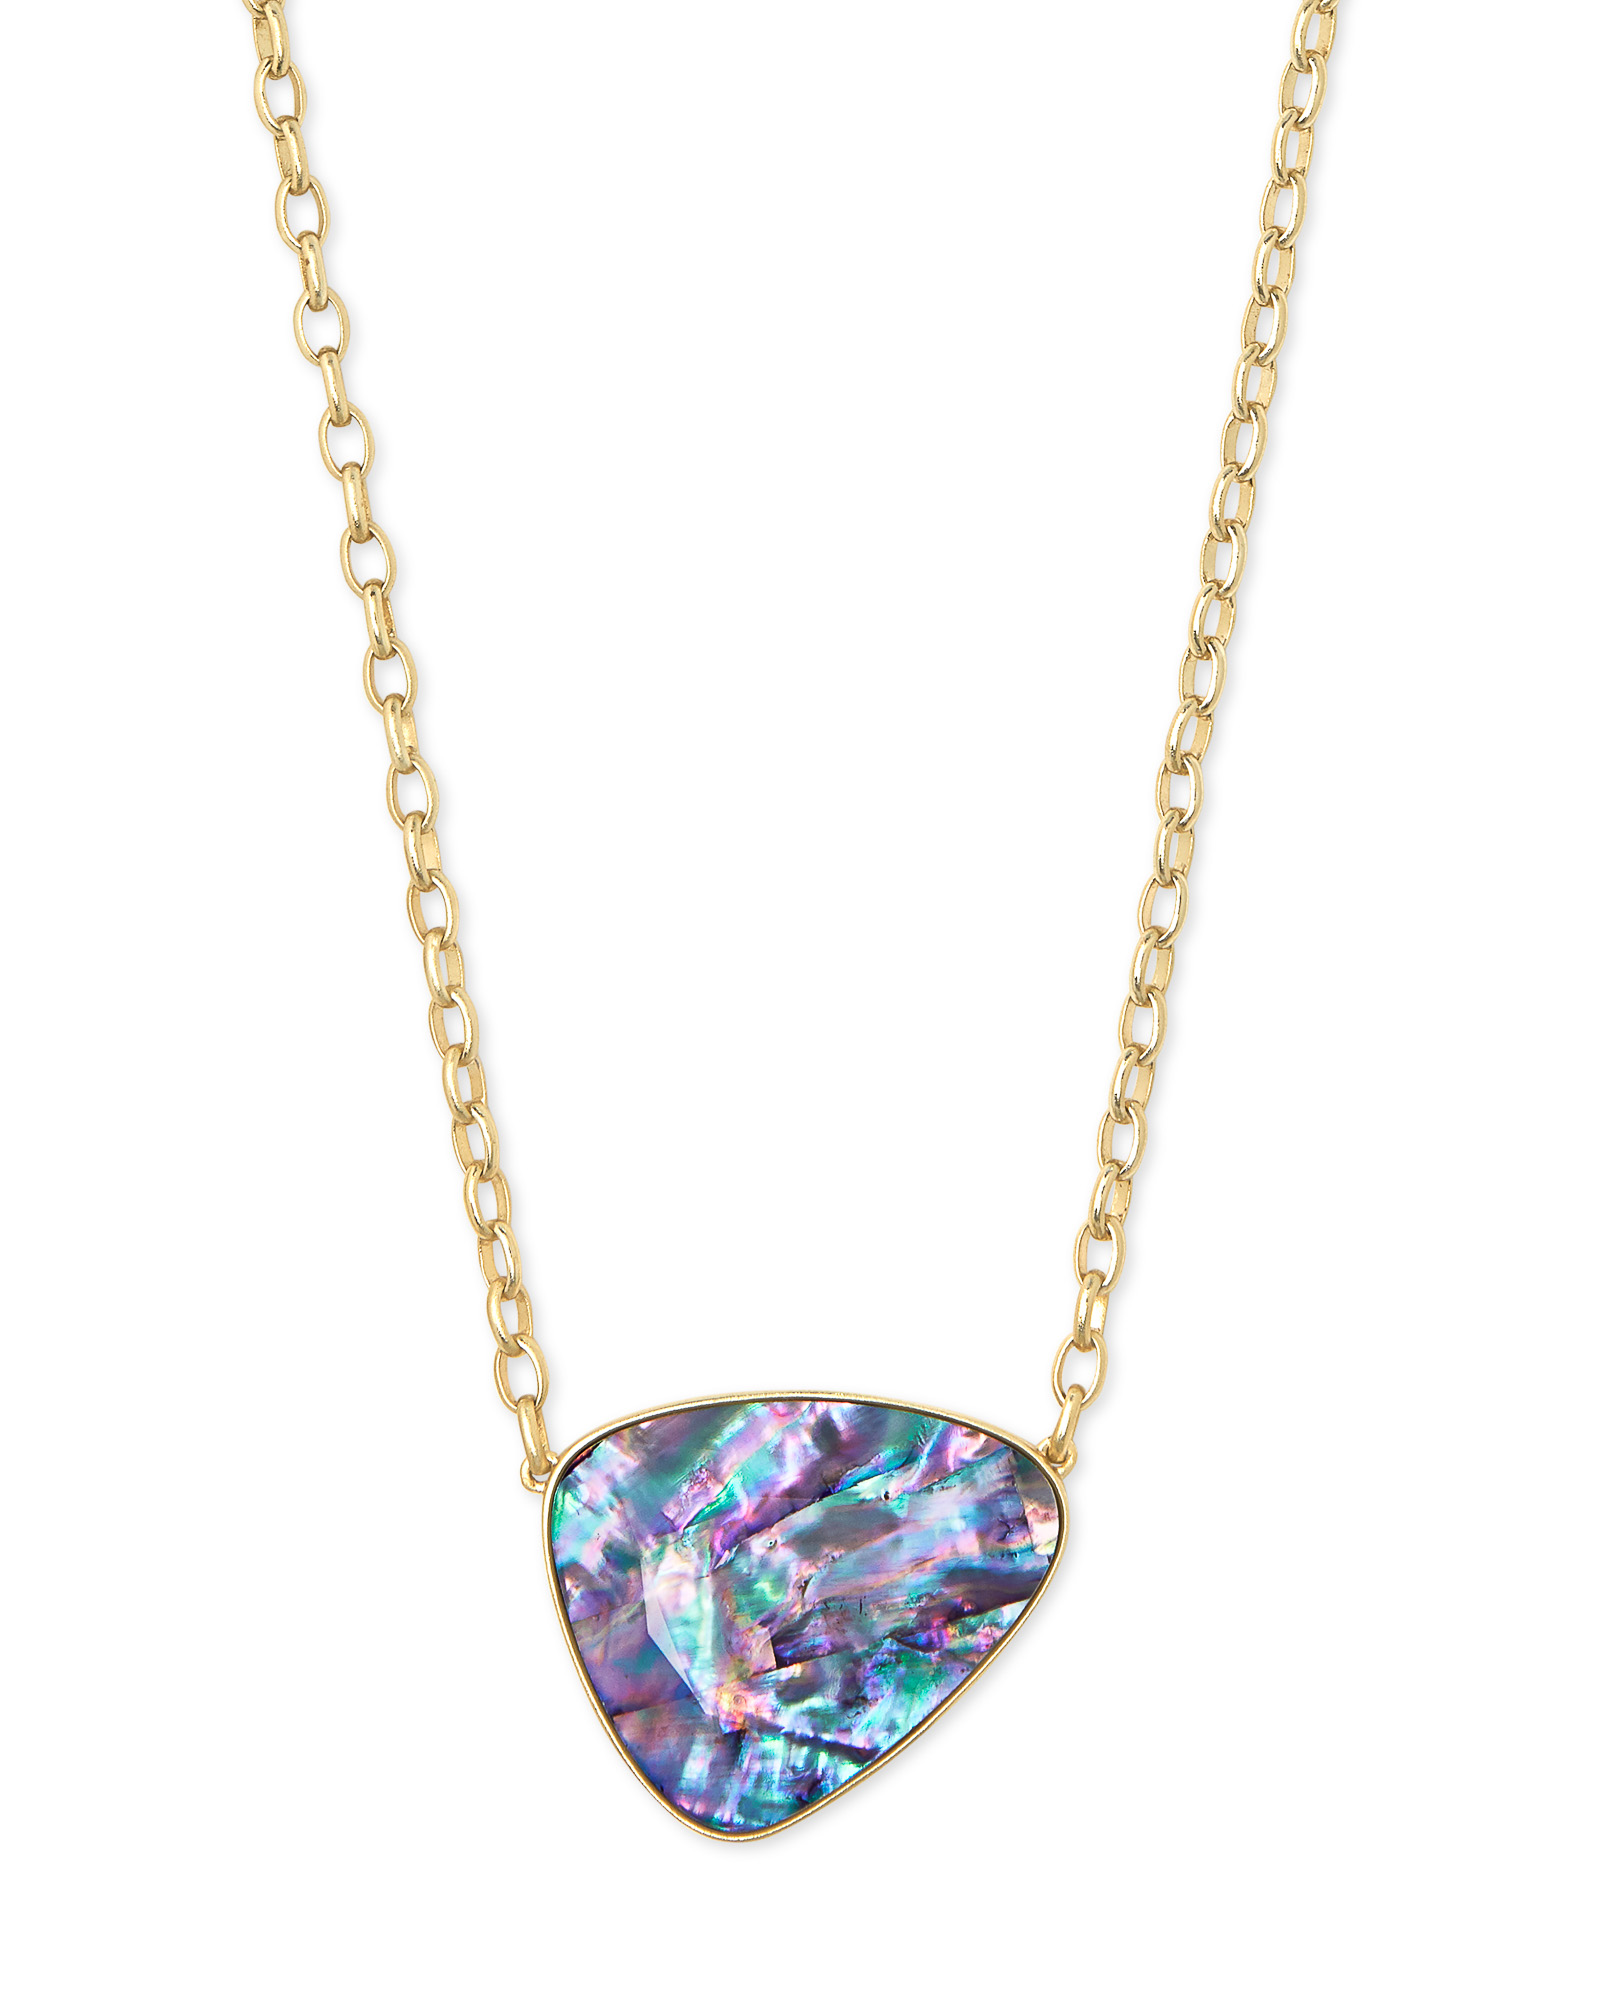 Mckenna Gold Pendant Necklace in Lilac Abalone